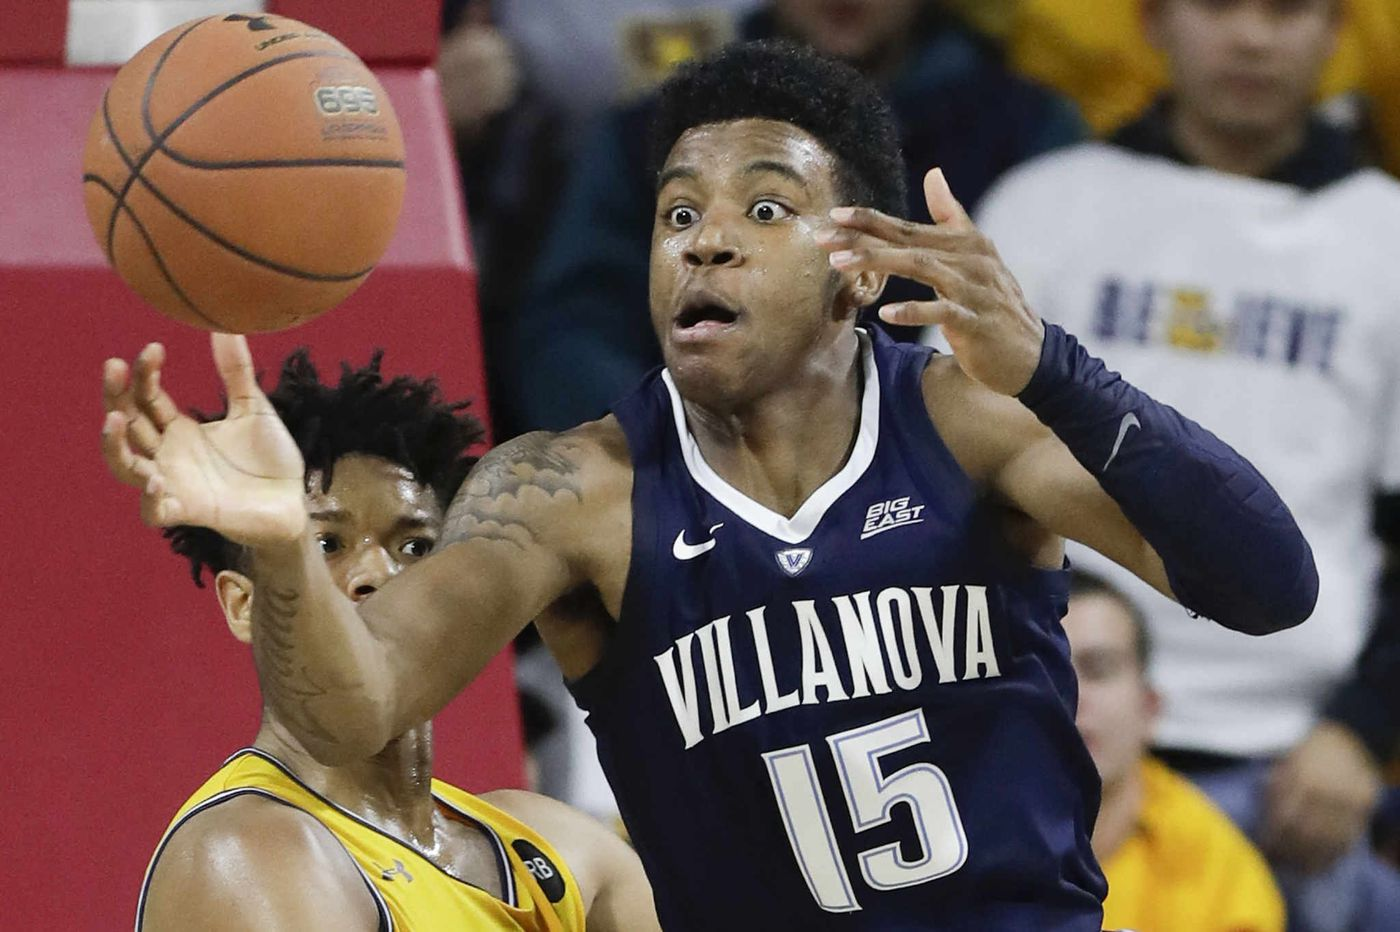 Villanova will put 23-game Big 5 winning streak on the line against Temple